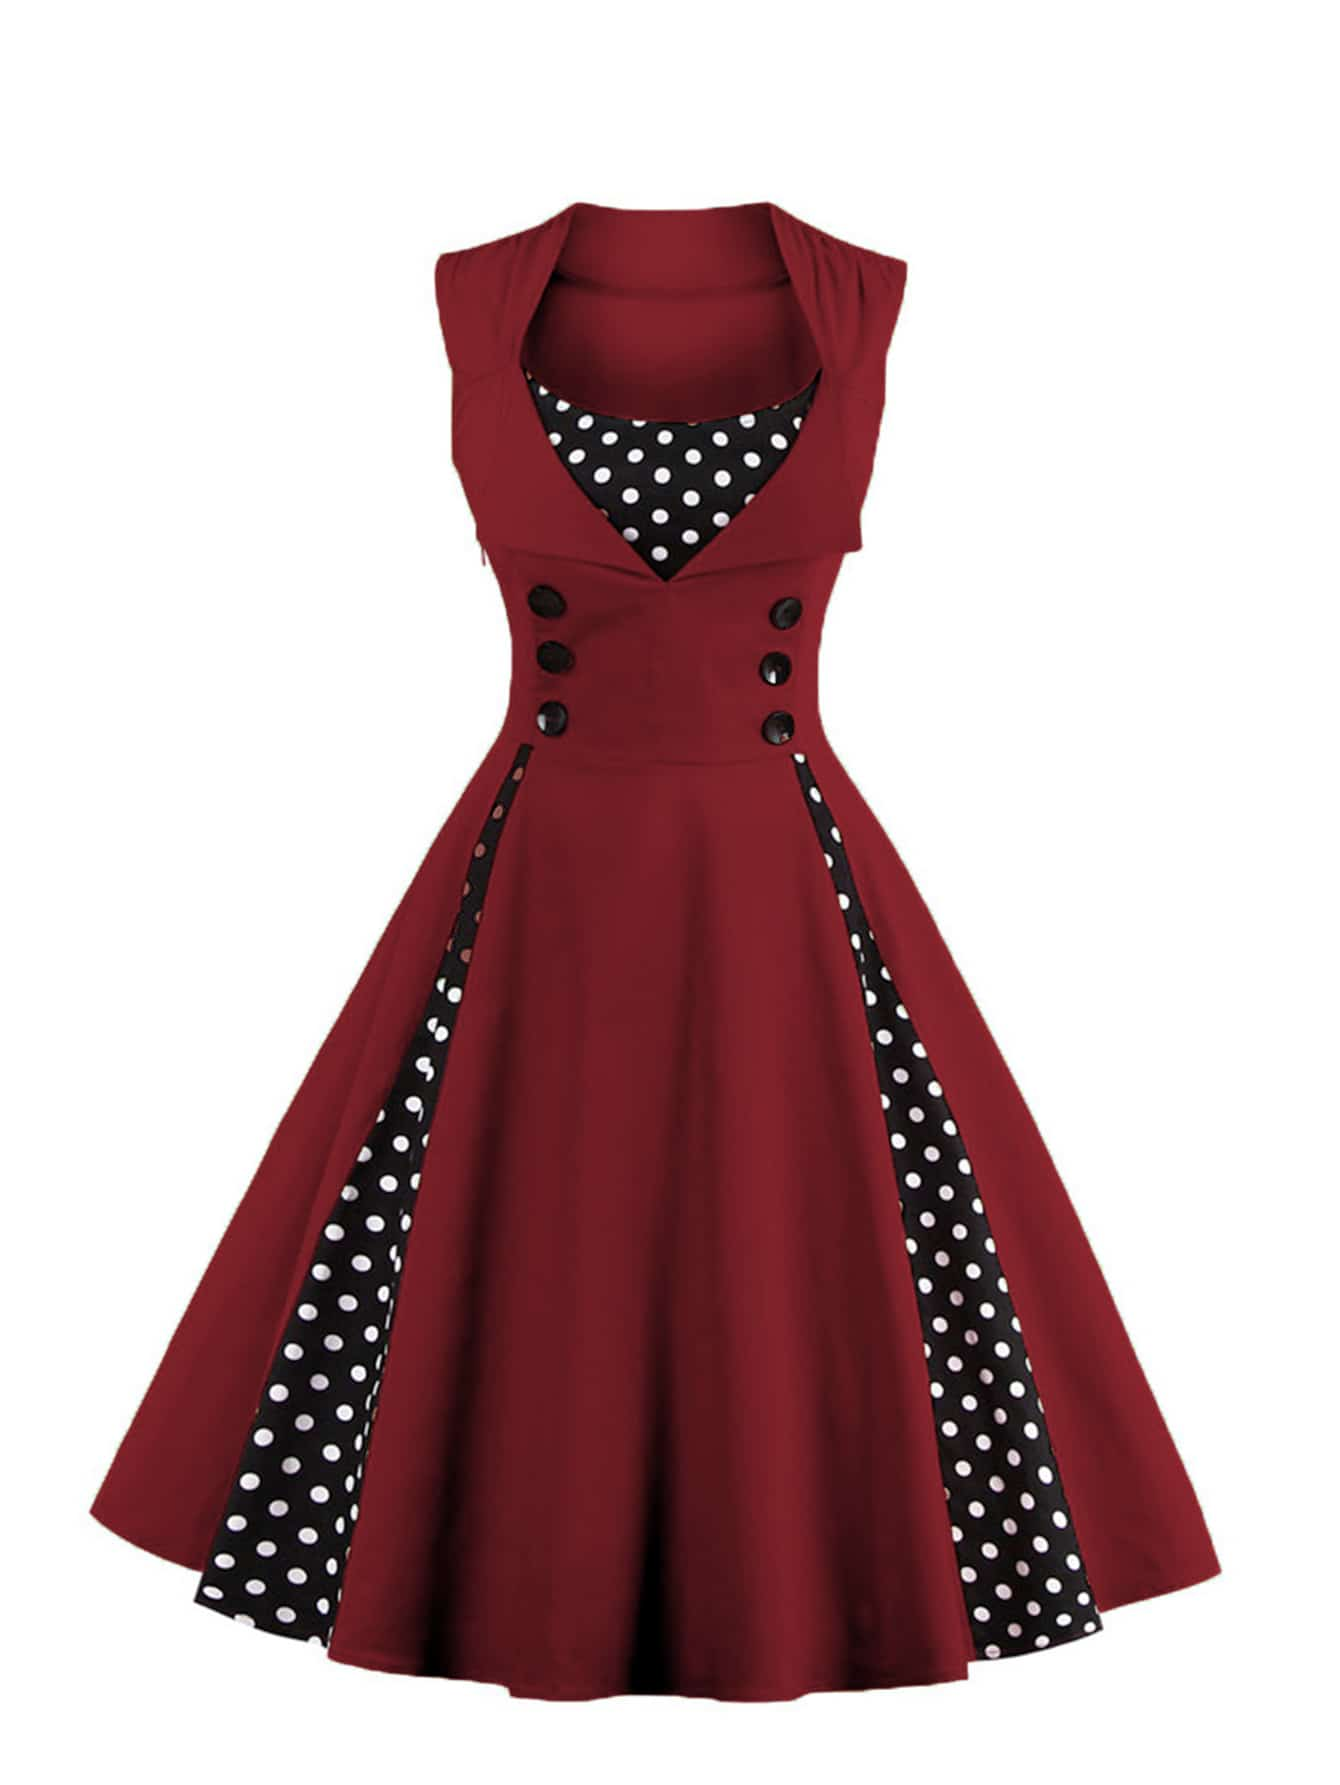 Contrast Polka Dot Foldover Circle Dress polka dot slit hem contrast dress